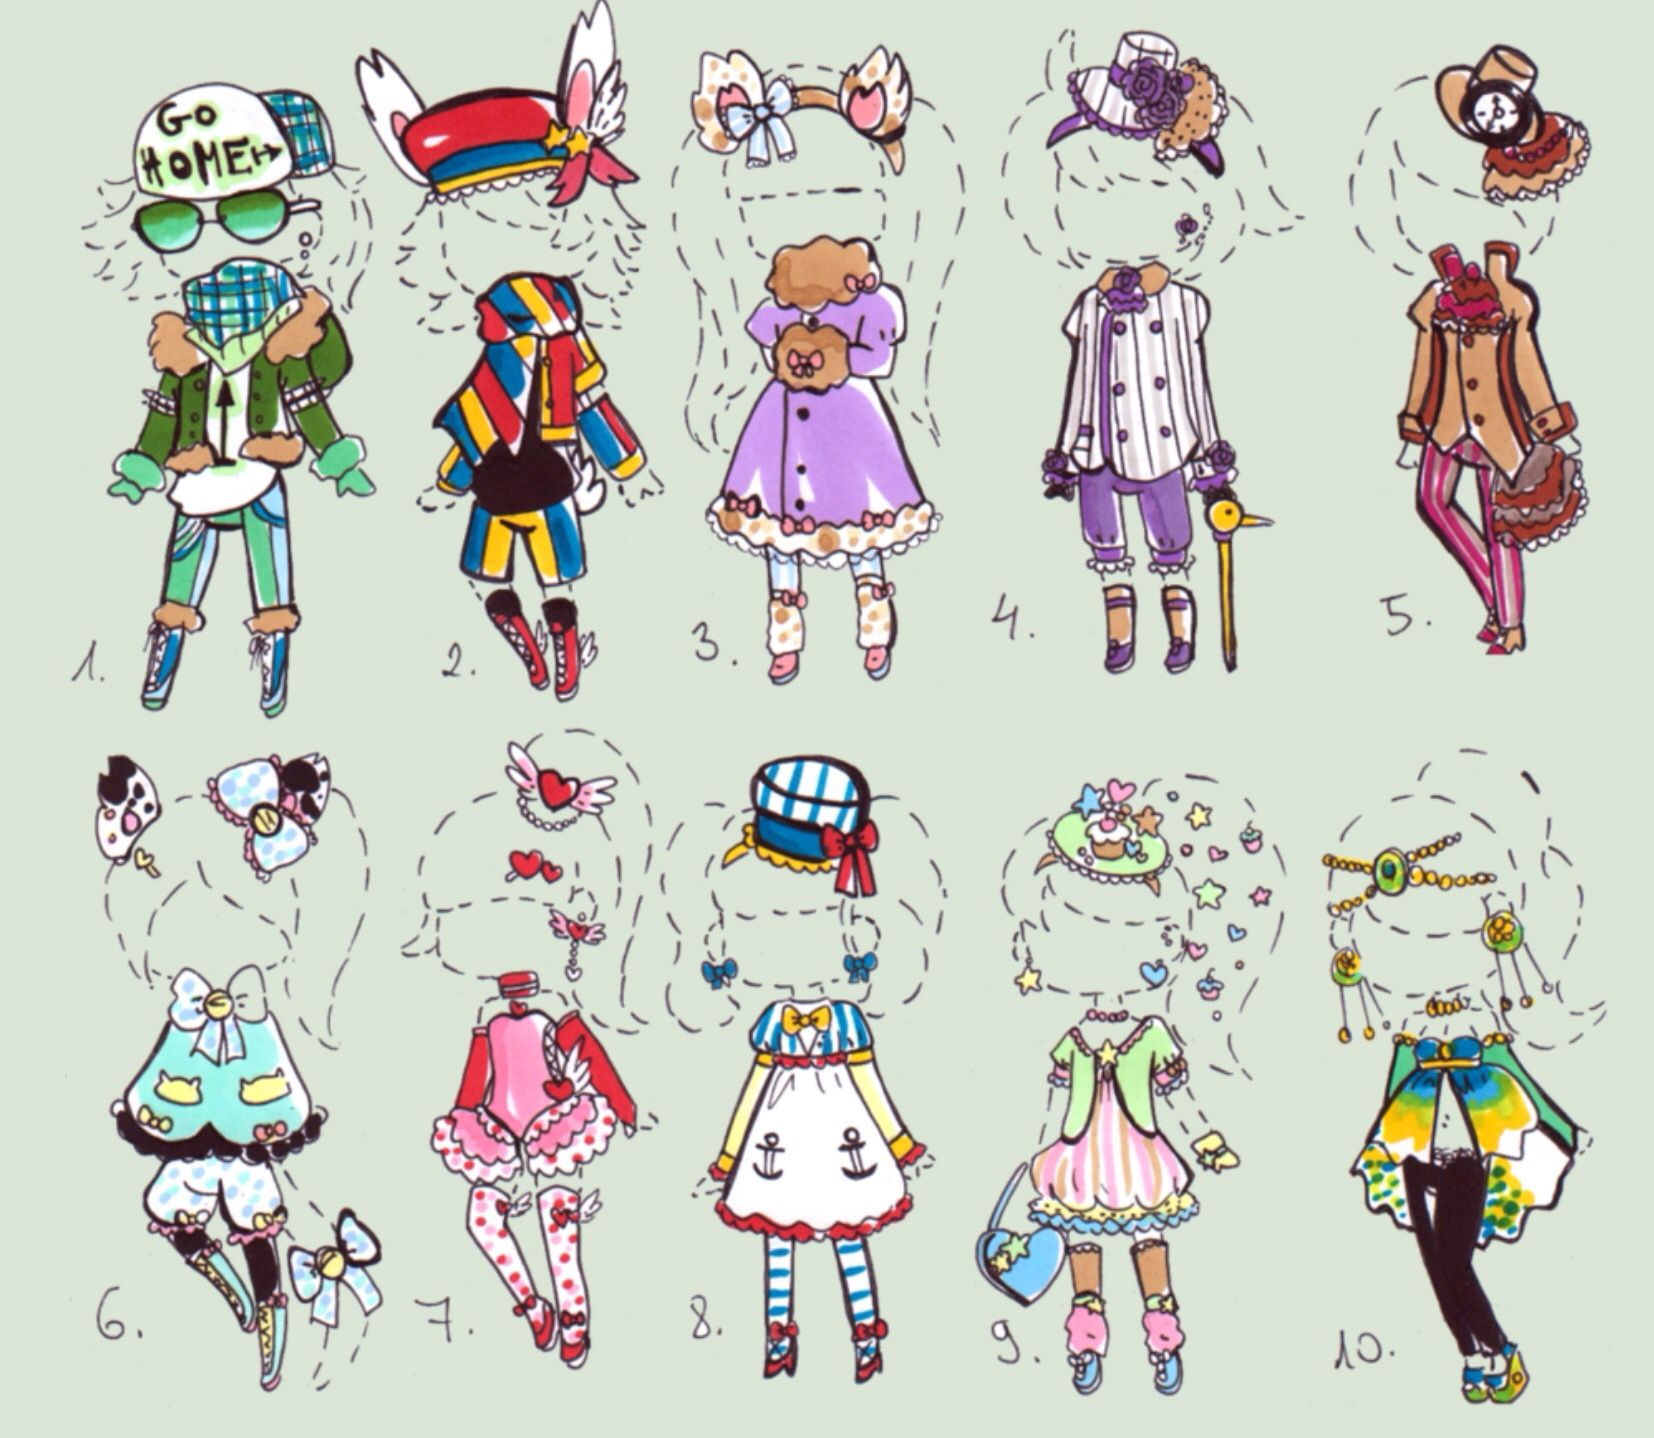 Guppie-Adopts  Drawings, Character design, Fashion design drawings